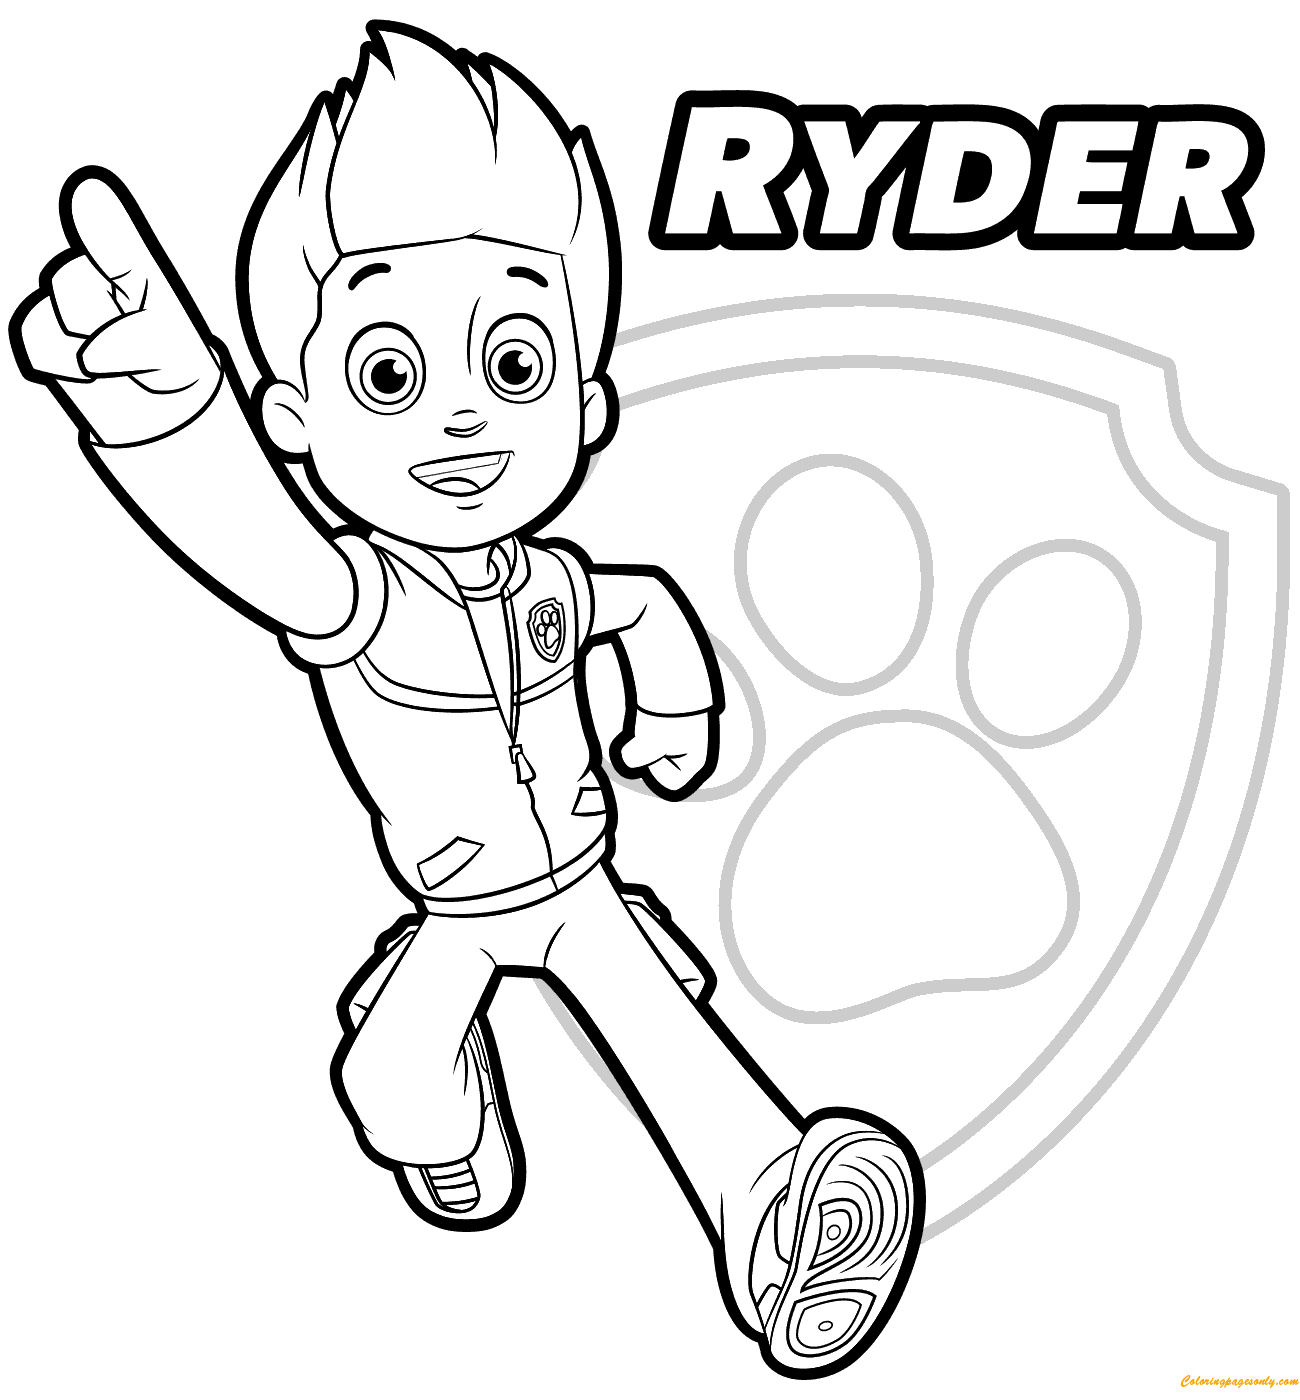 Paw Patrol Ryder 1 Coloring Page Free Coloring Pages Online